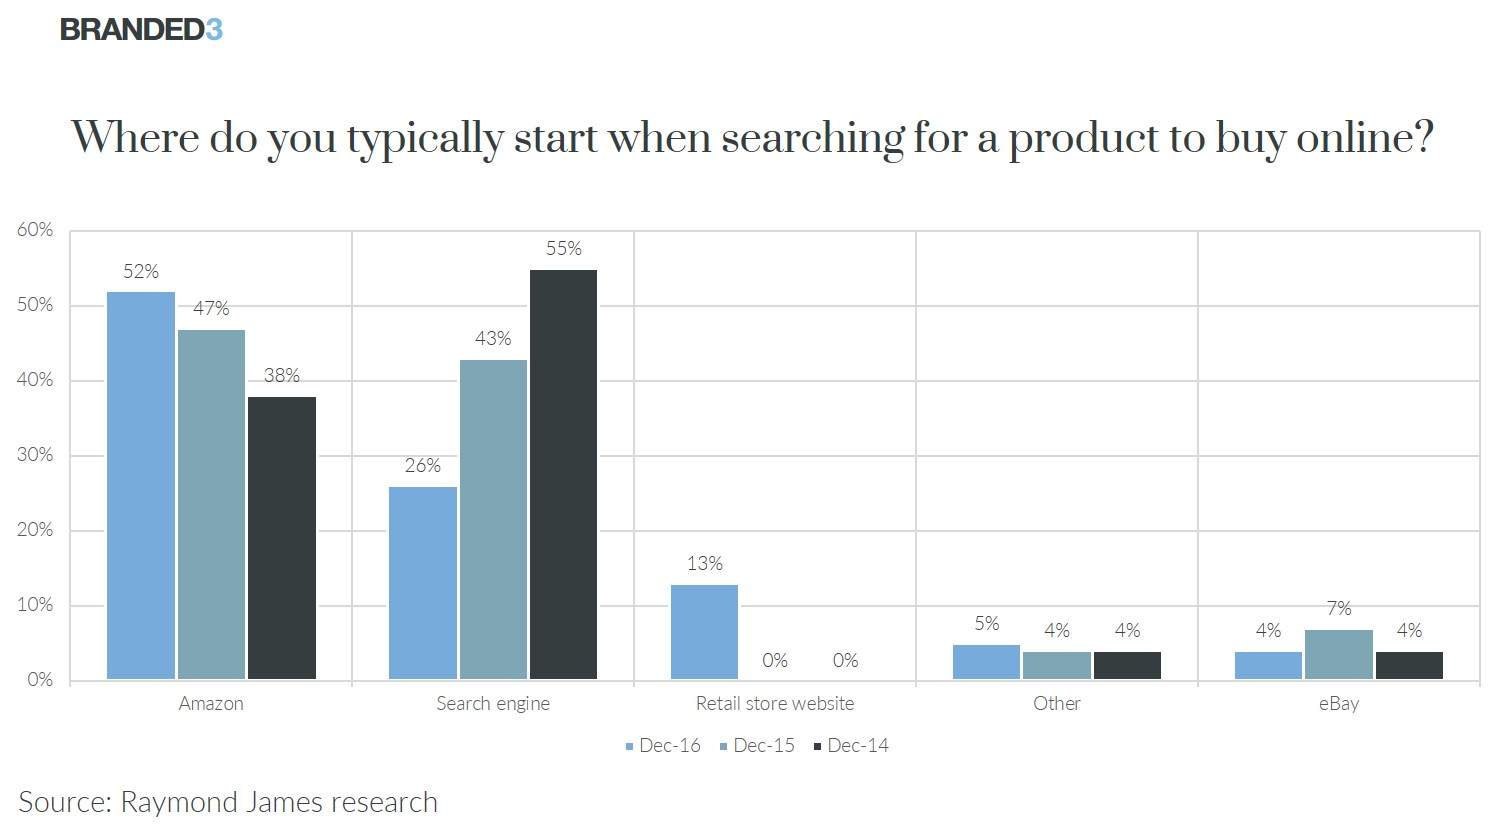 55% of product searches begin on Amazon